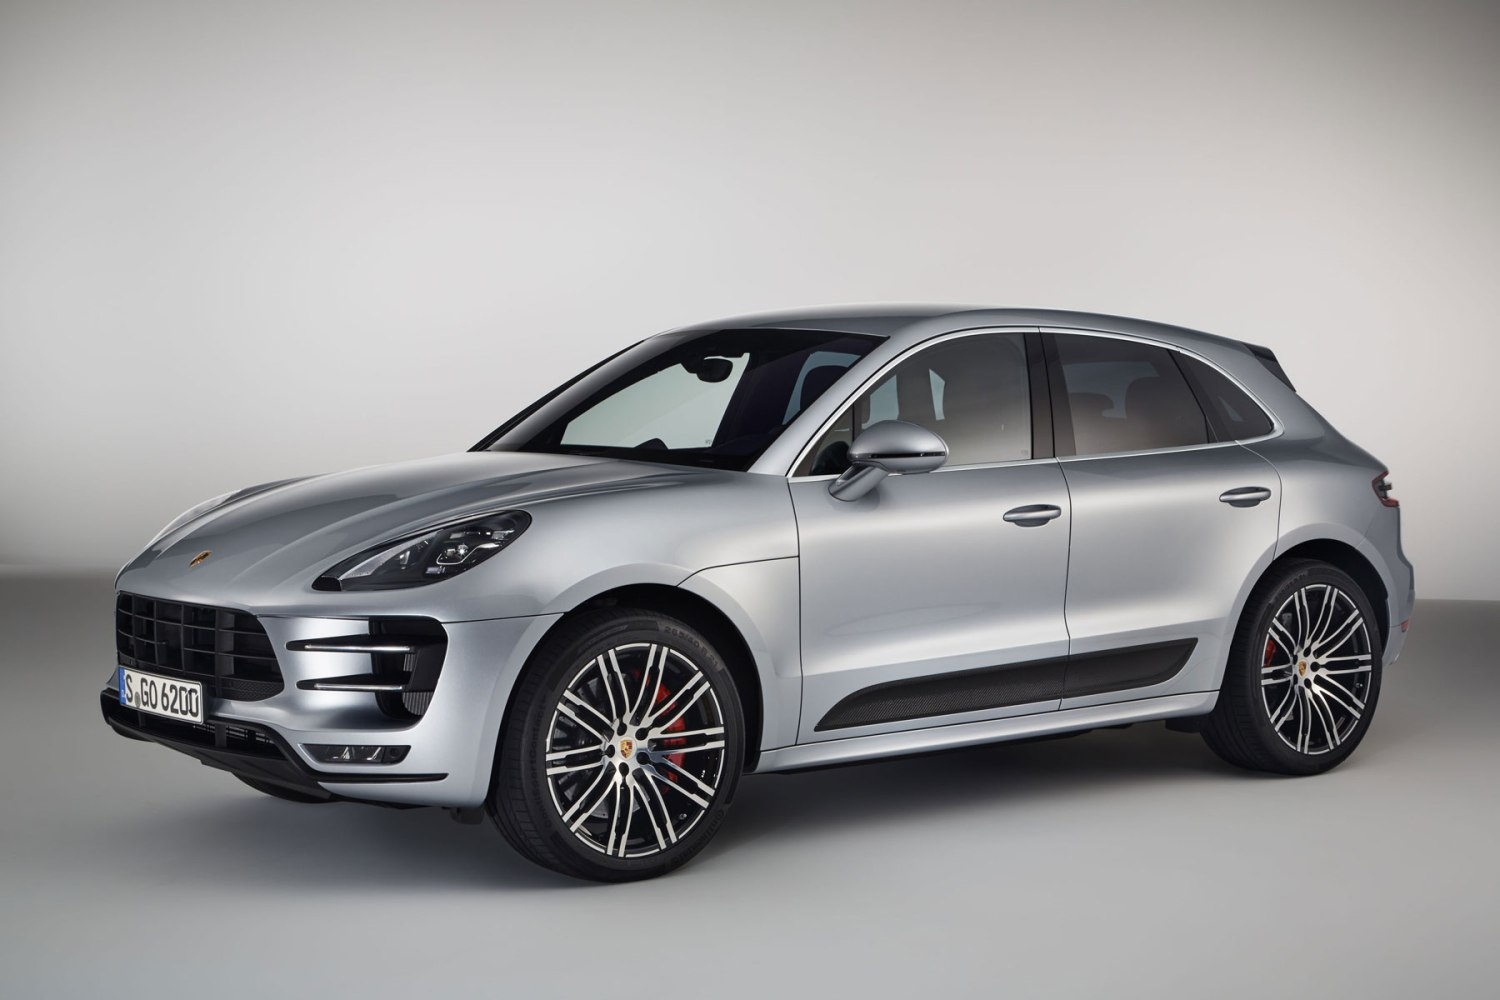 Porsche Macan Turbo Performance Package upgrade